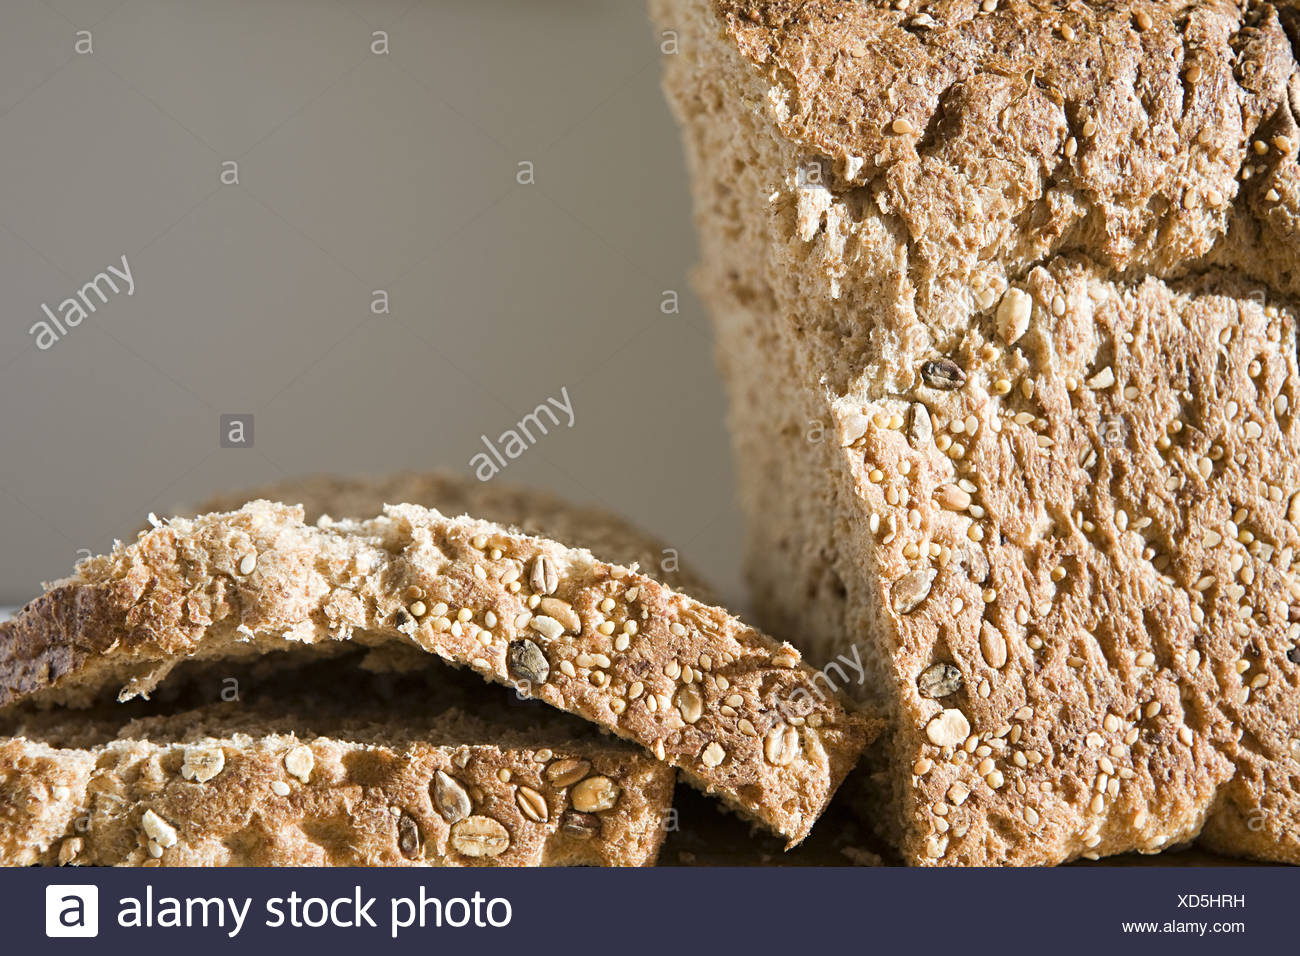 Slices of wholemeal bread - Stock Image